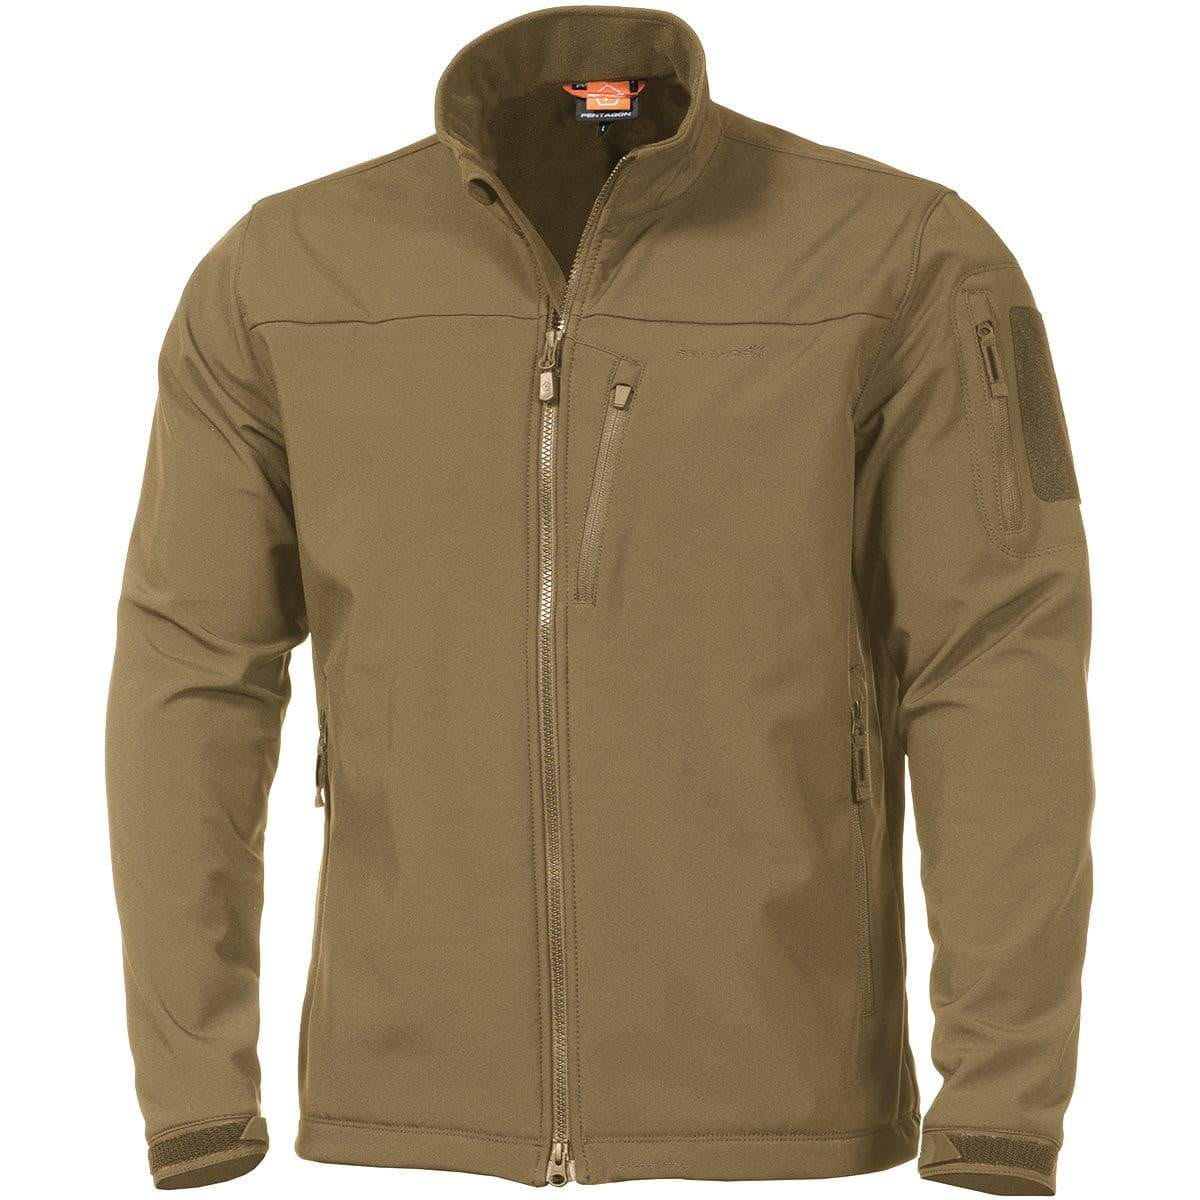 Pentagon Softshell Jacket Reiner 2.0 - CHK-SHIELD | Outdoor Army - Tactical Gear Shop